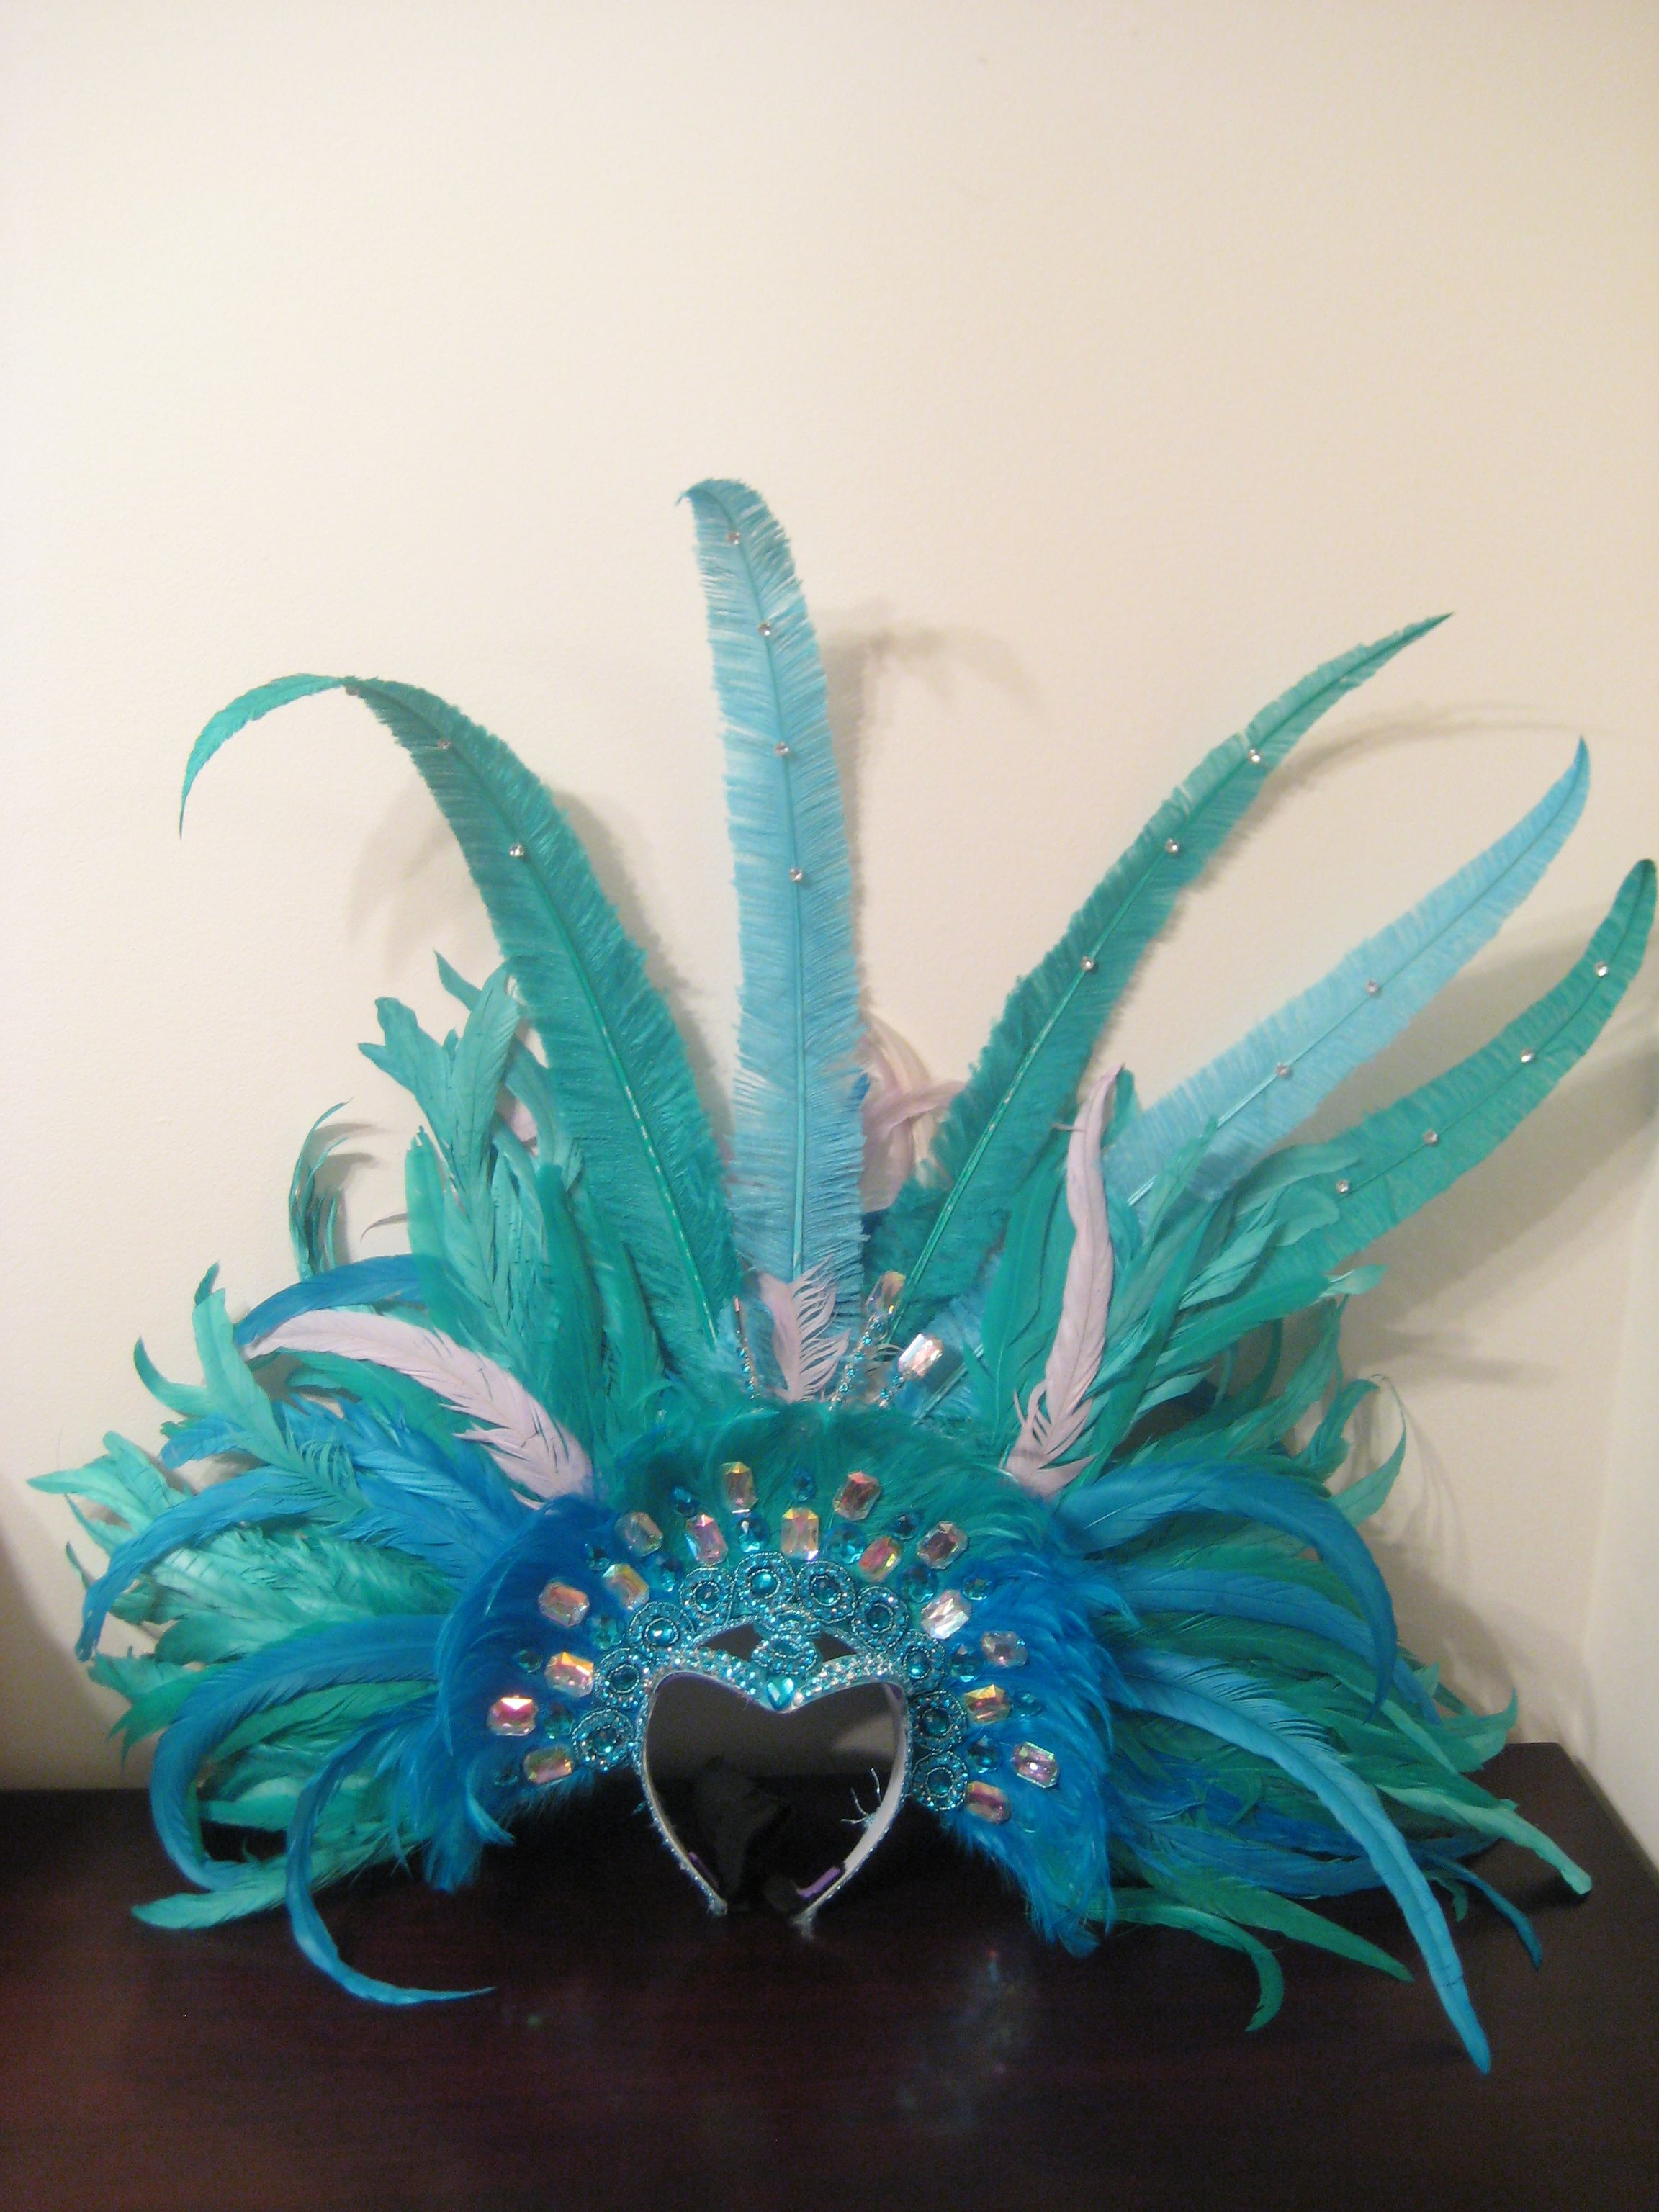 d8b87edfc07 How to Make Carnival Headpieces